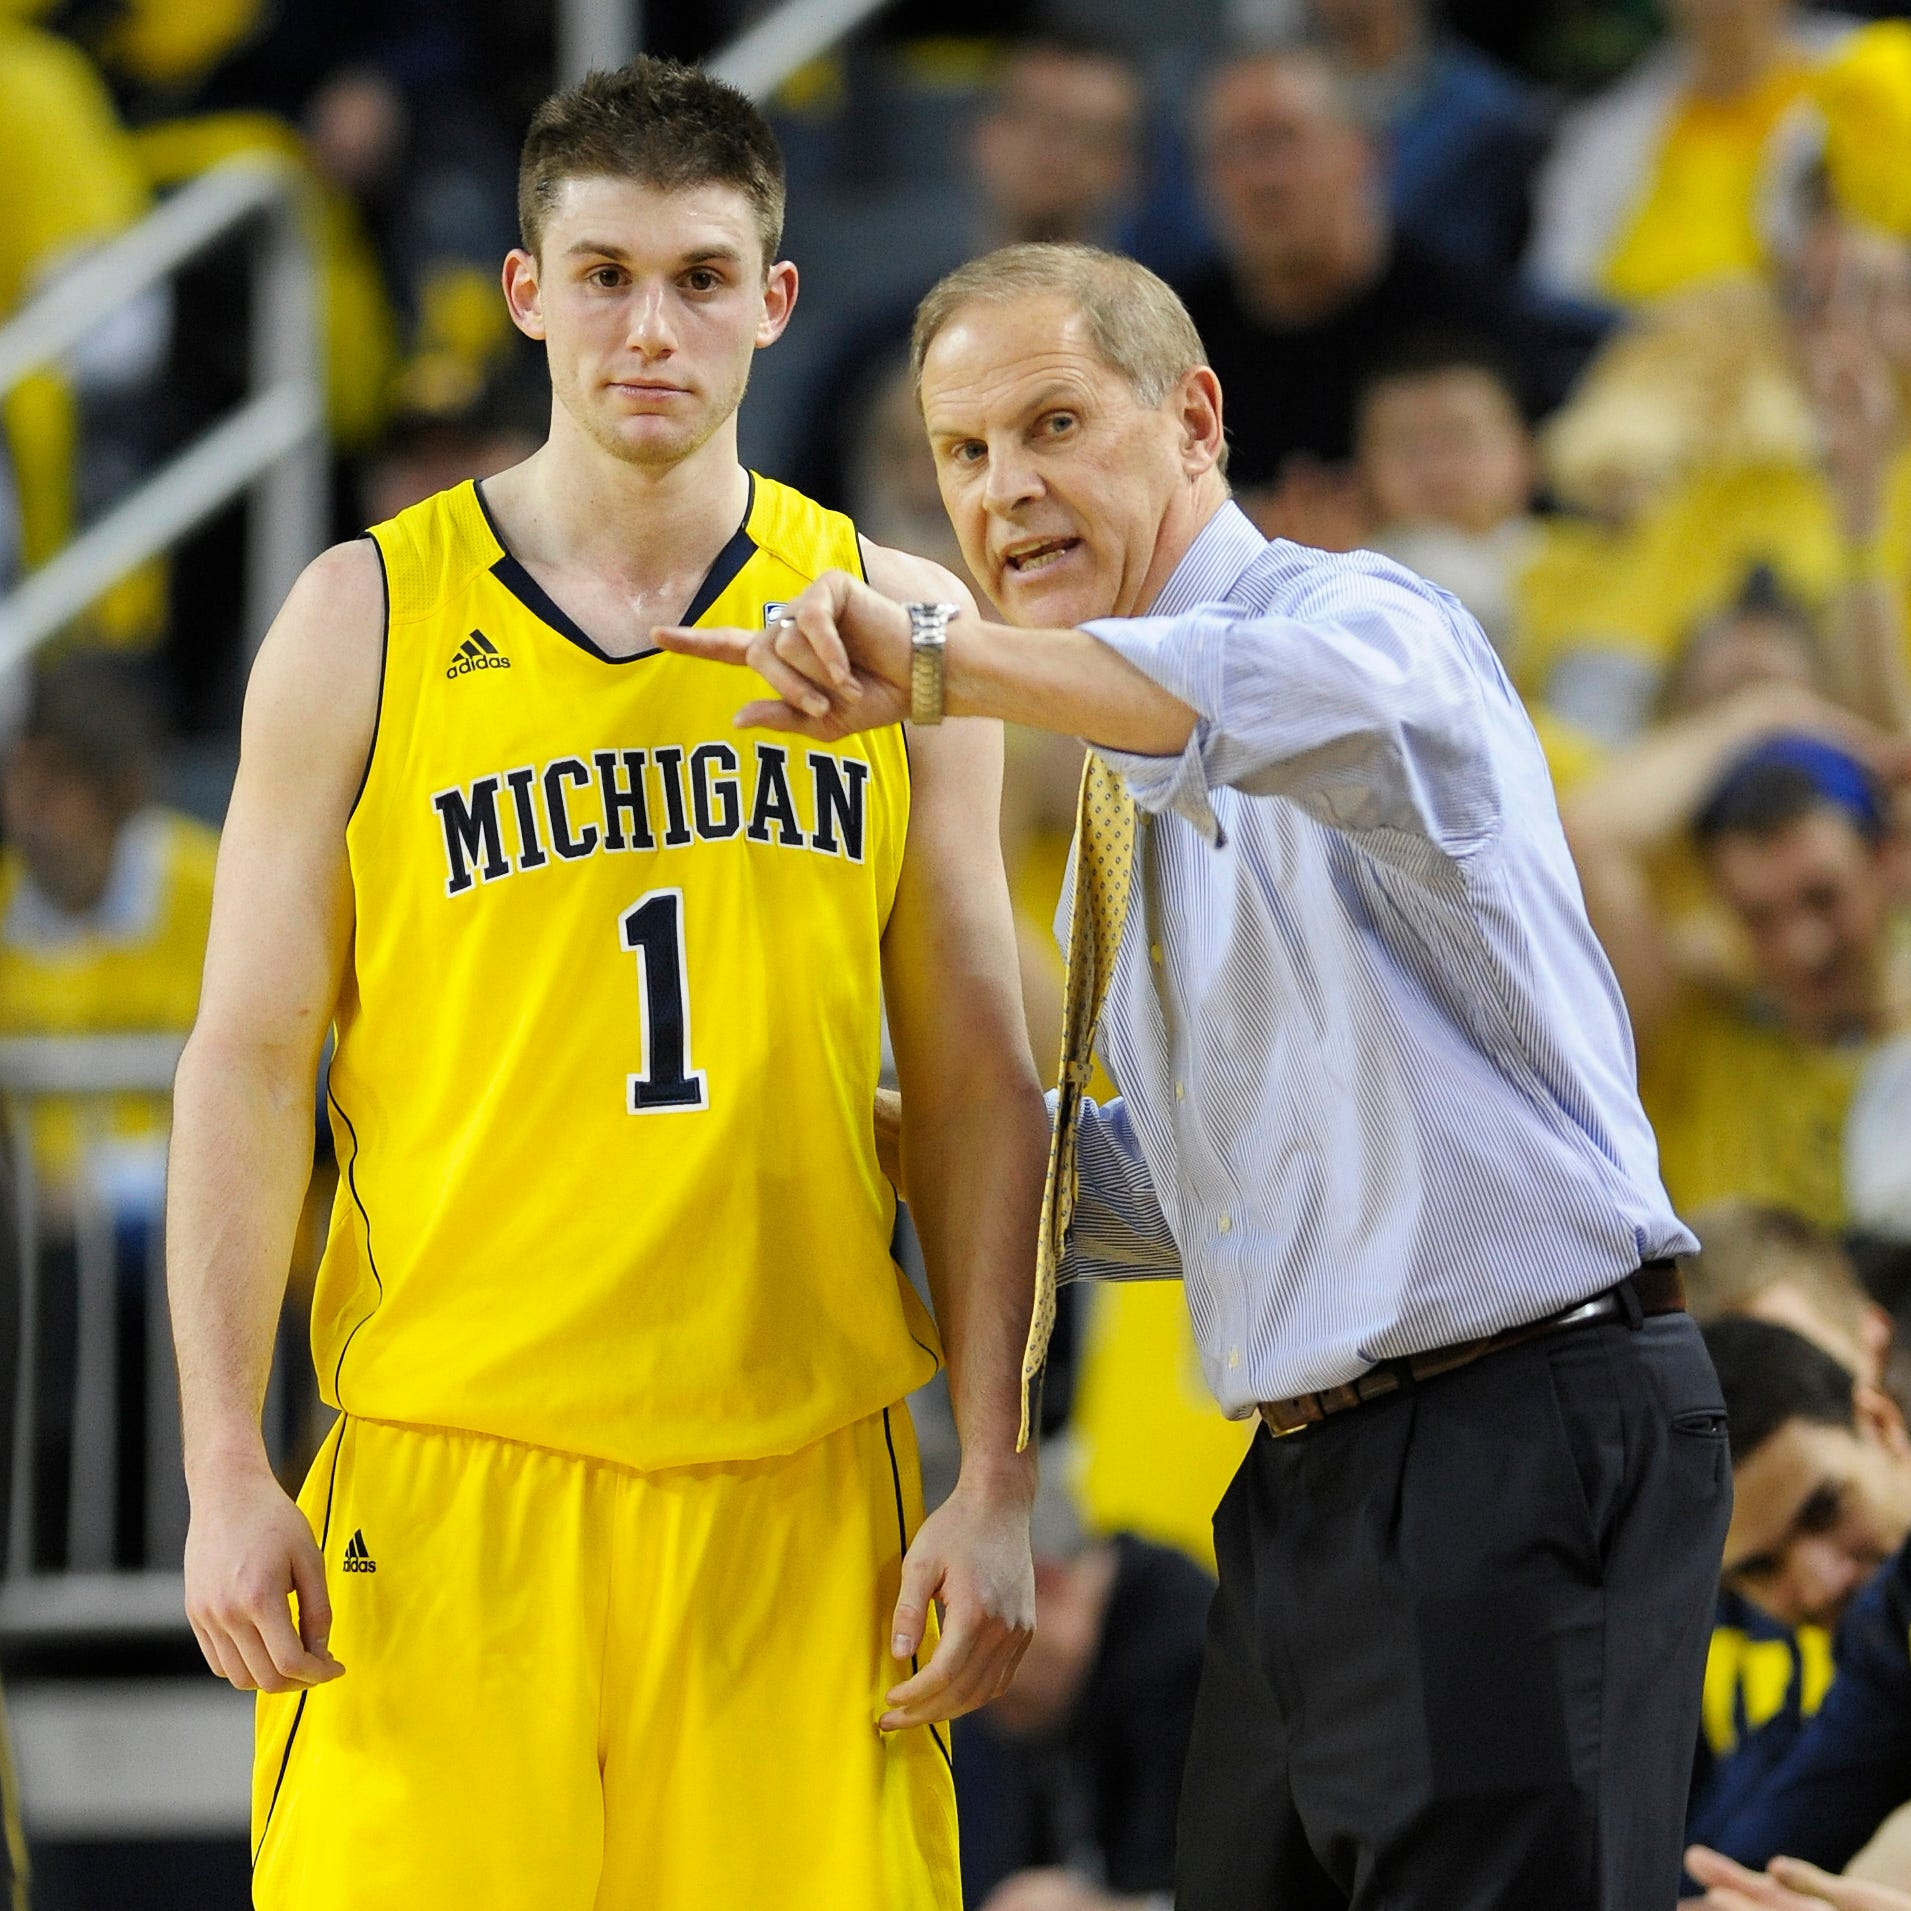 'Good move': John Beilein will be a success in the NBA, analysts say